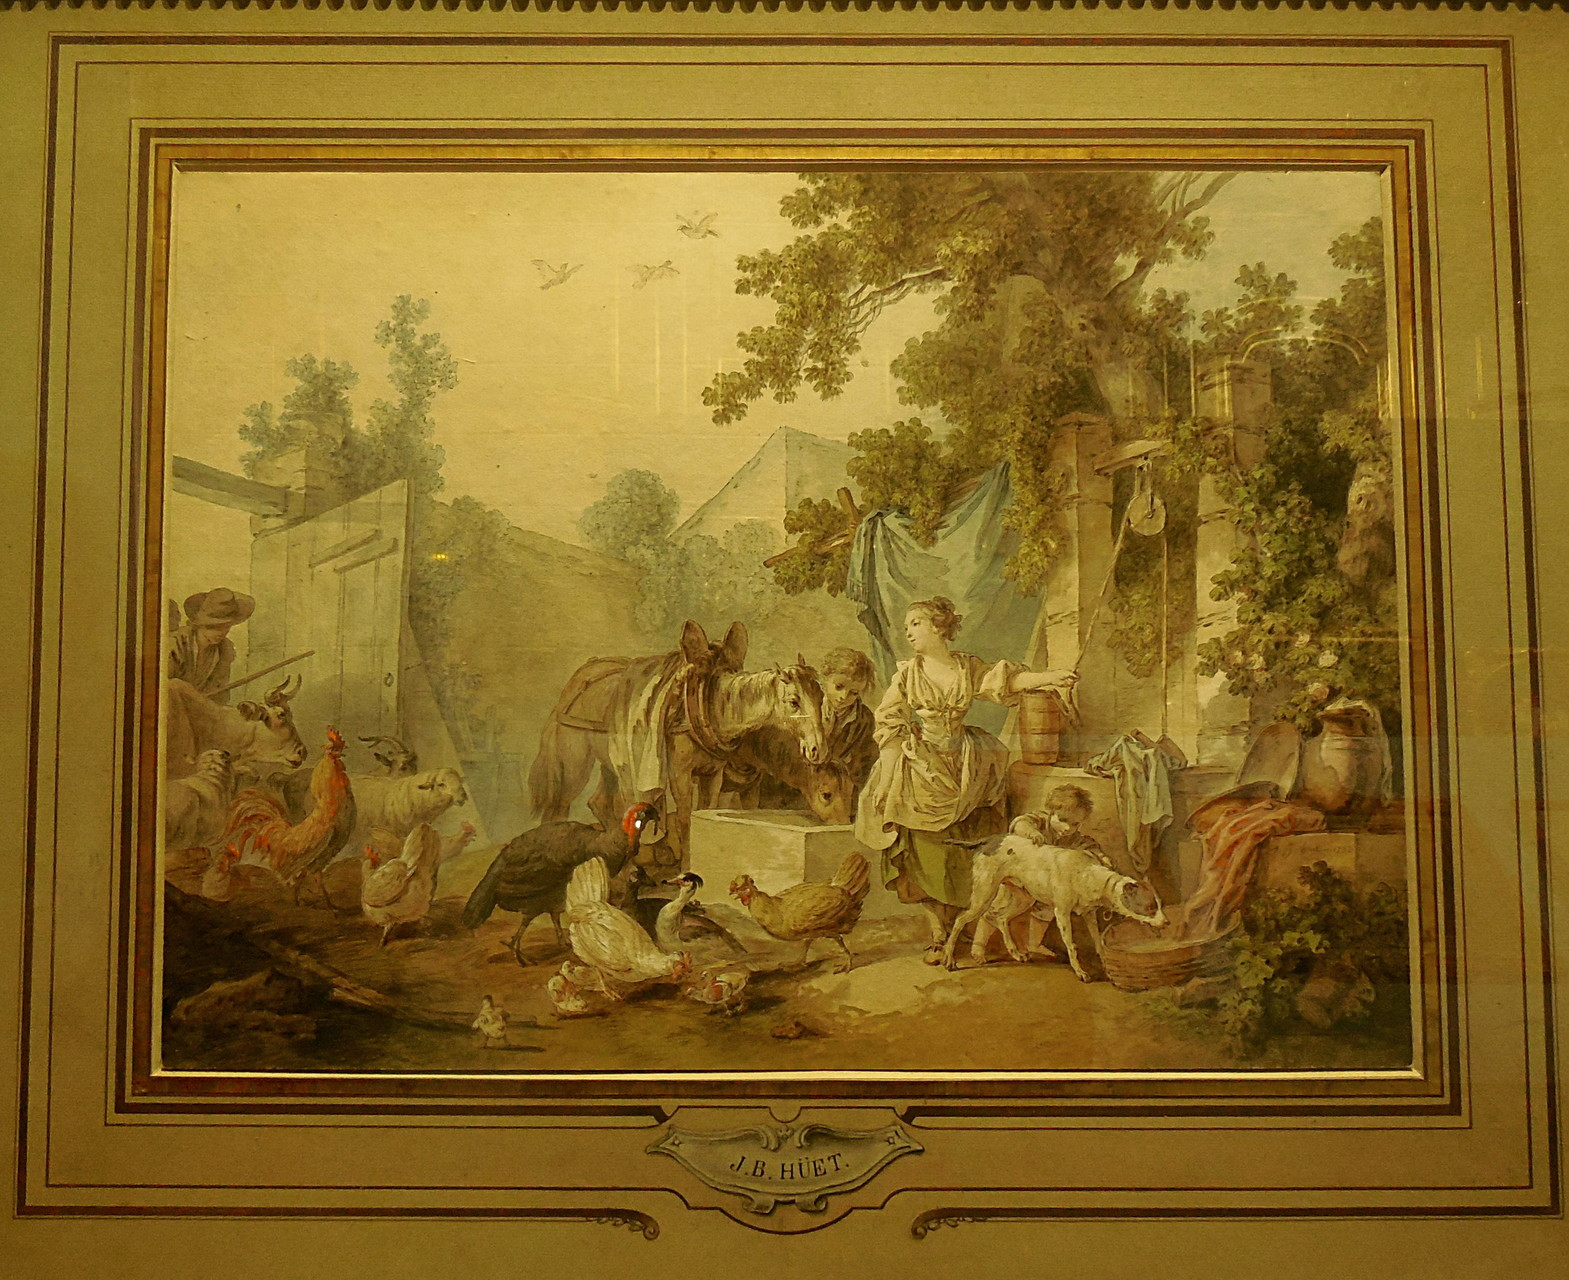 Huet J-B, Cour de ferme, 1782, Coll privée / Photo JH